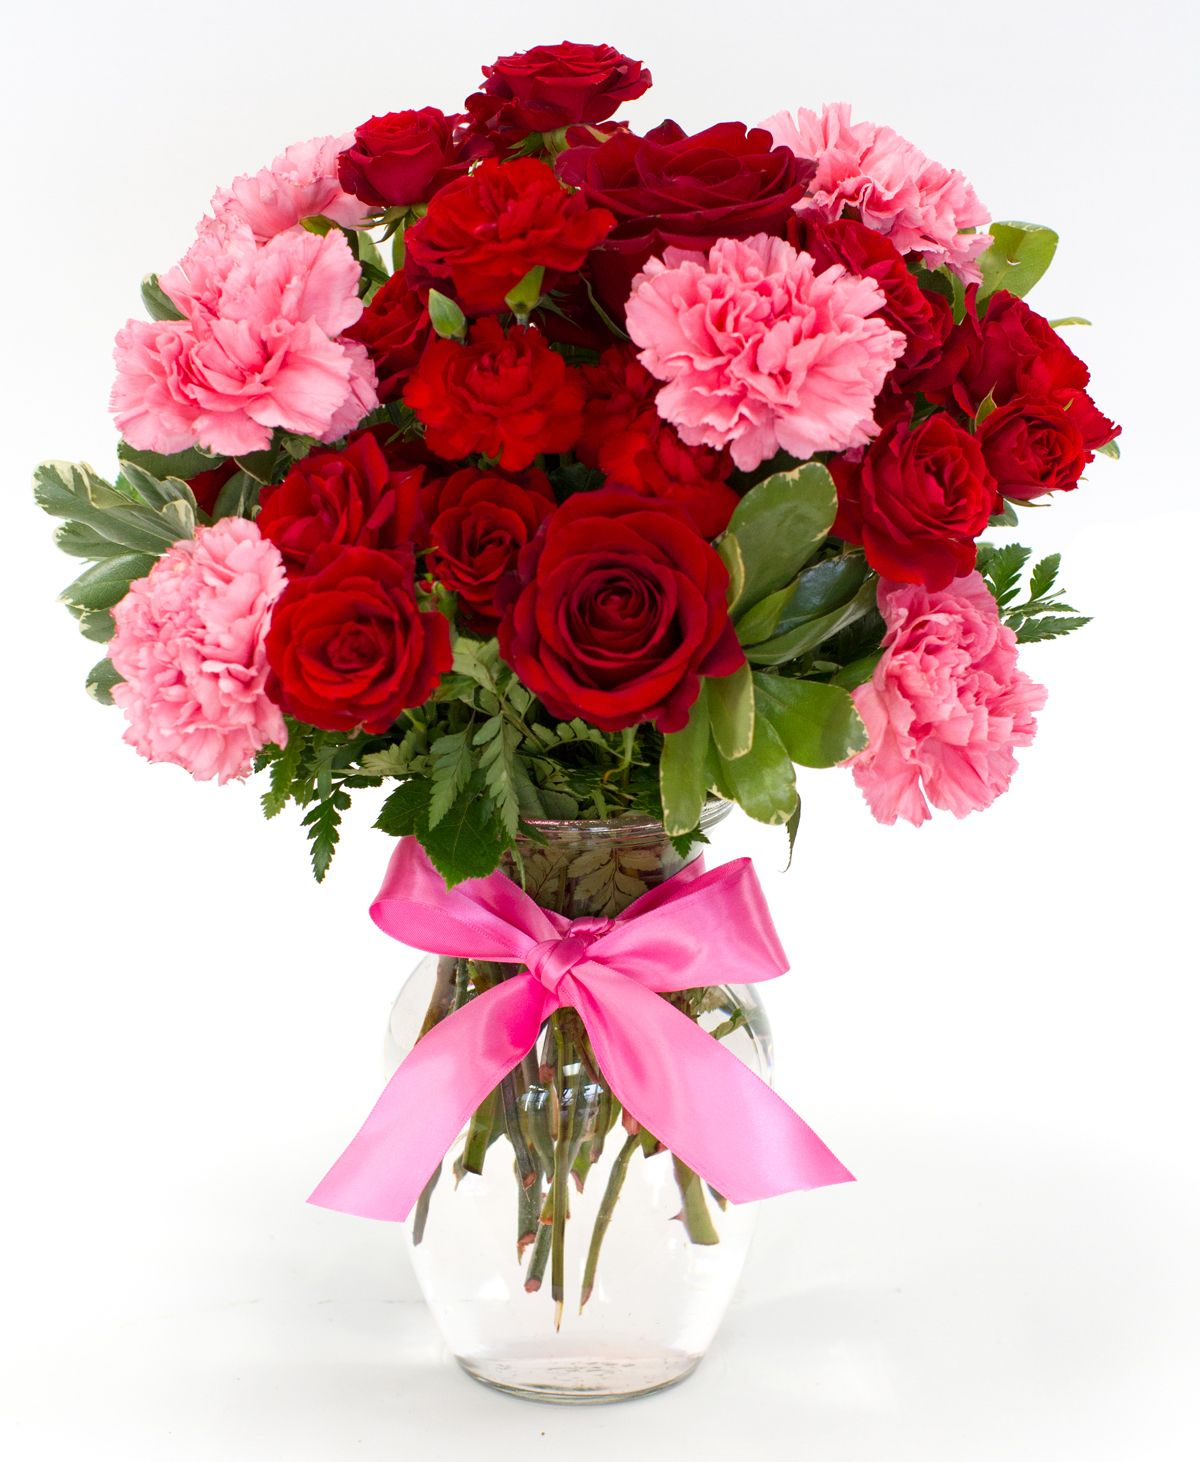 Valentines day ps i love you more flowerama columbus valentines day ps i love you more flowerama columbus columbus florist same day flower delivery izmirmasajfo